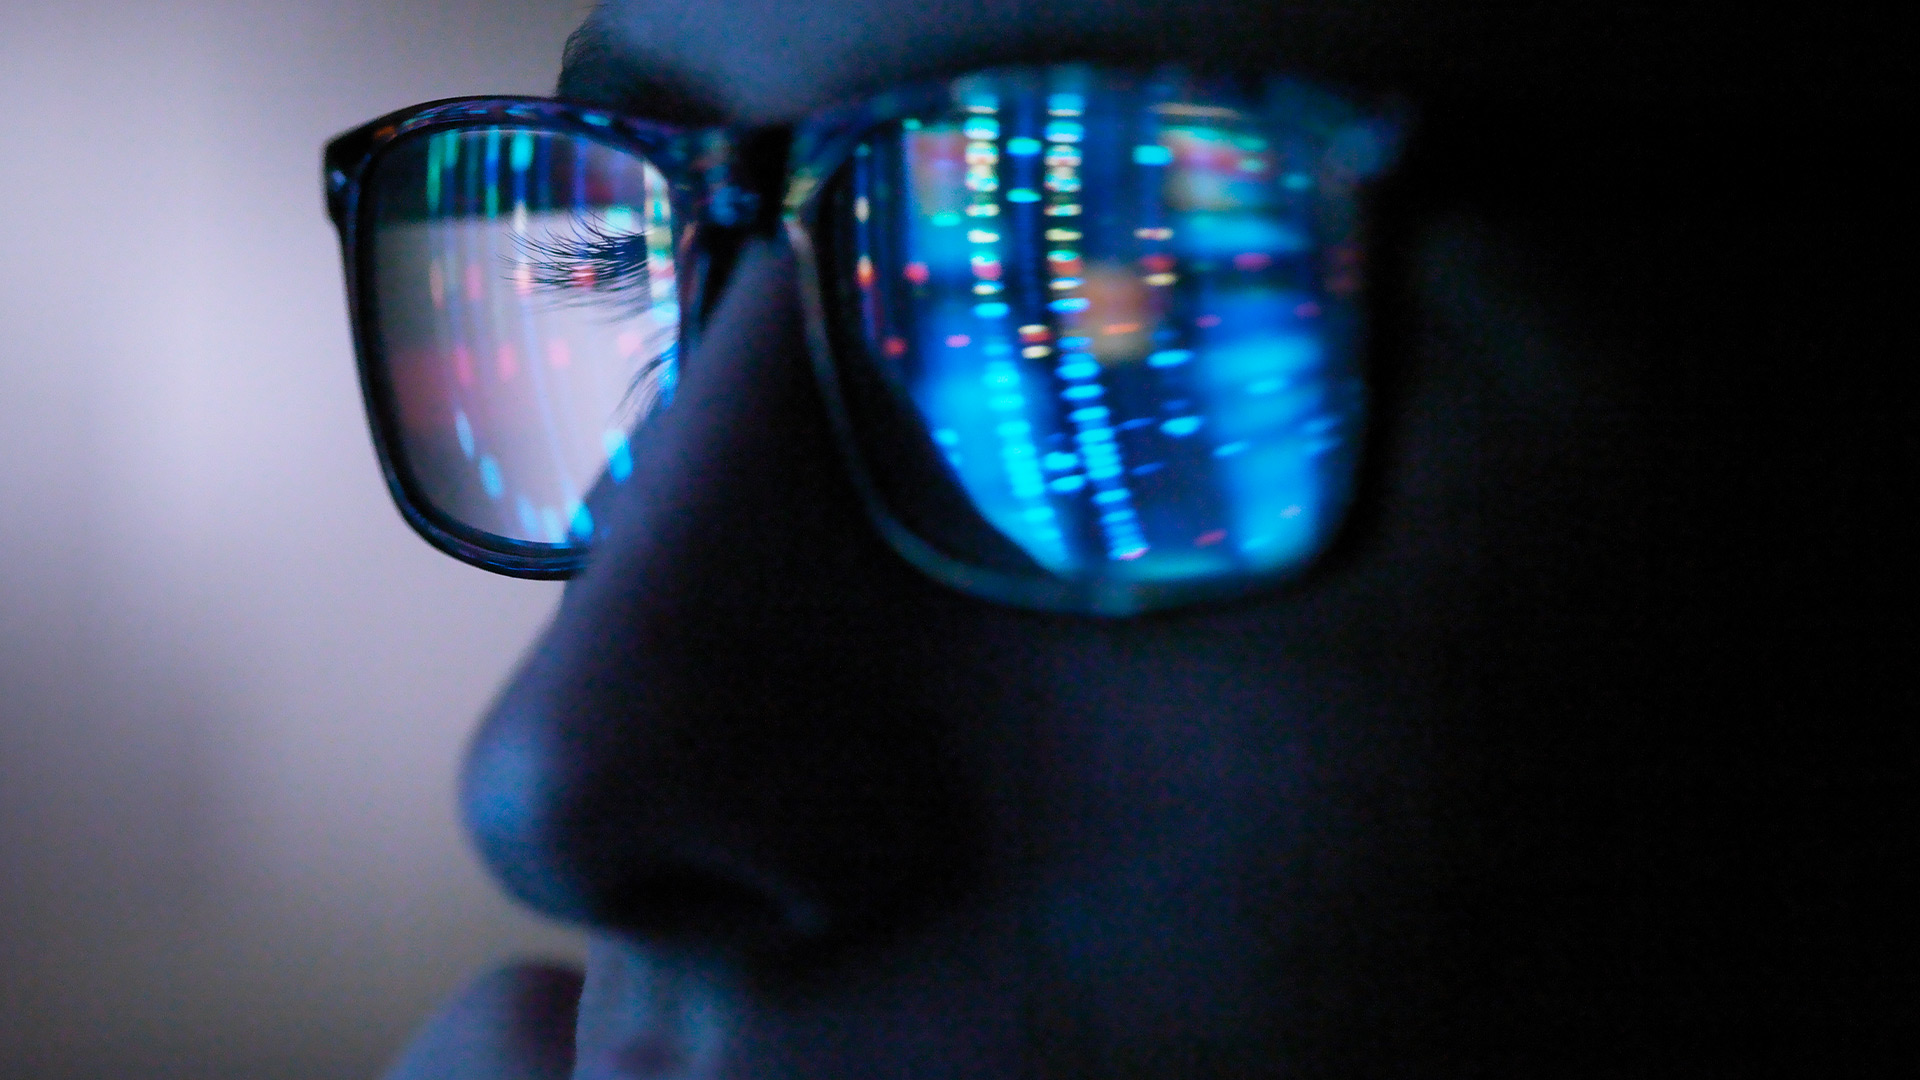 Reflection of computer on glasses